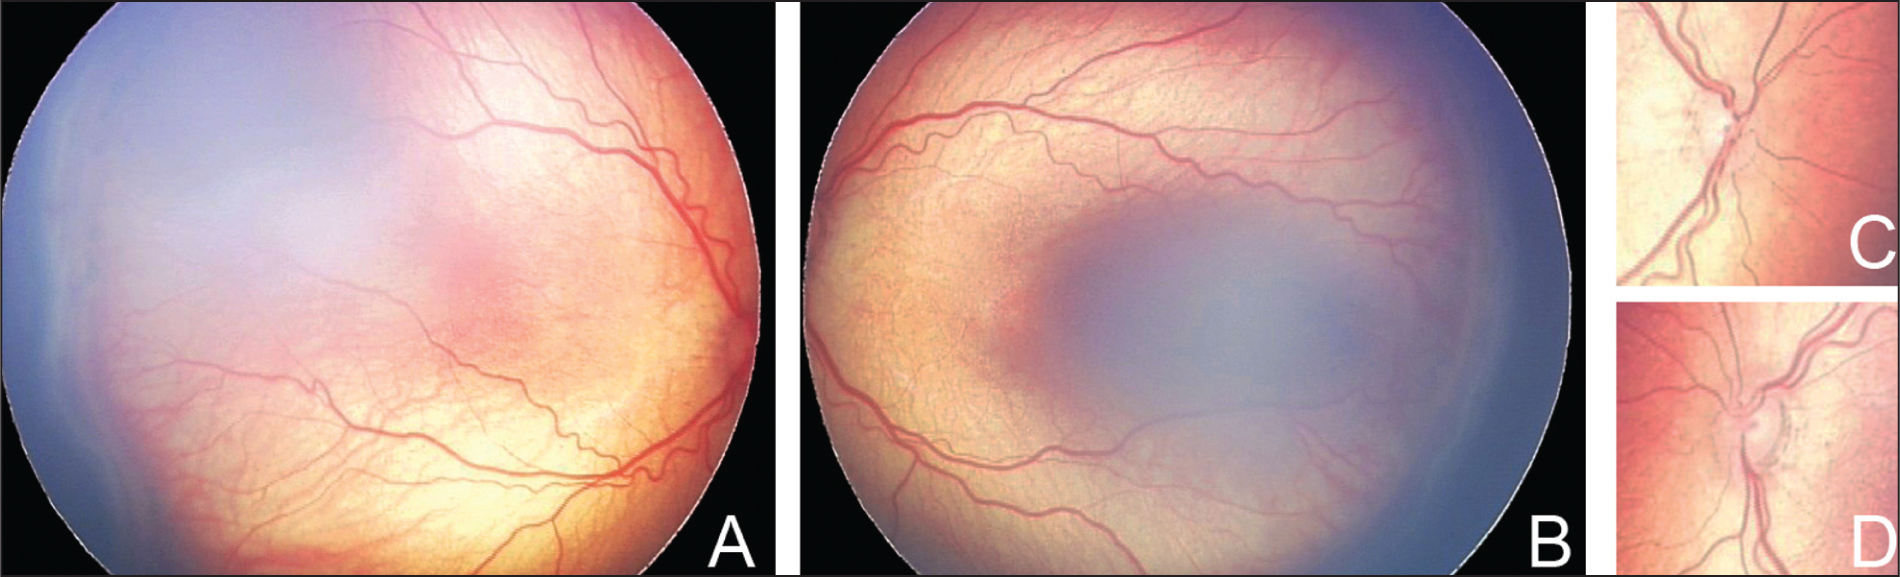 Zone III Stage 3 Retinopathy of Prematurity with plus Disease Developed at Postmenstrual Age 38 4/7 Weeks in a Former 30 6/7-Week Infant with a Birth Weight of 1,692 g. Vascularized Ridge Temporally in (A) the Right Eye and (B) the Left Eye. Arterial Tortuosity and Venous Dilatation, Centered on the (C) Right and (D) Left Optic Discs.